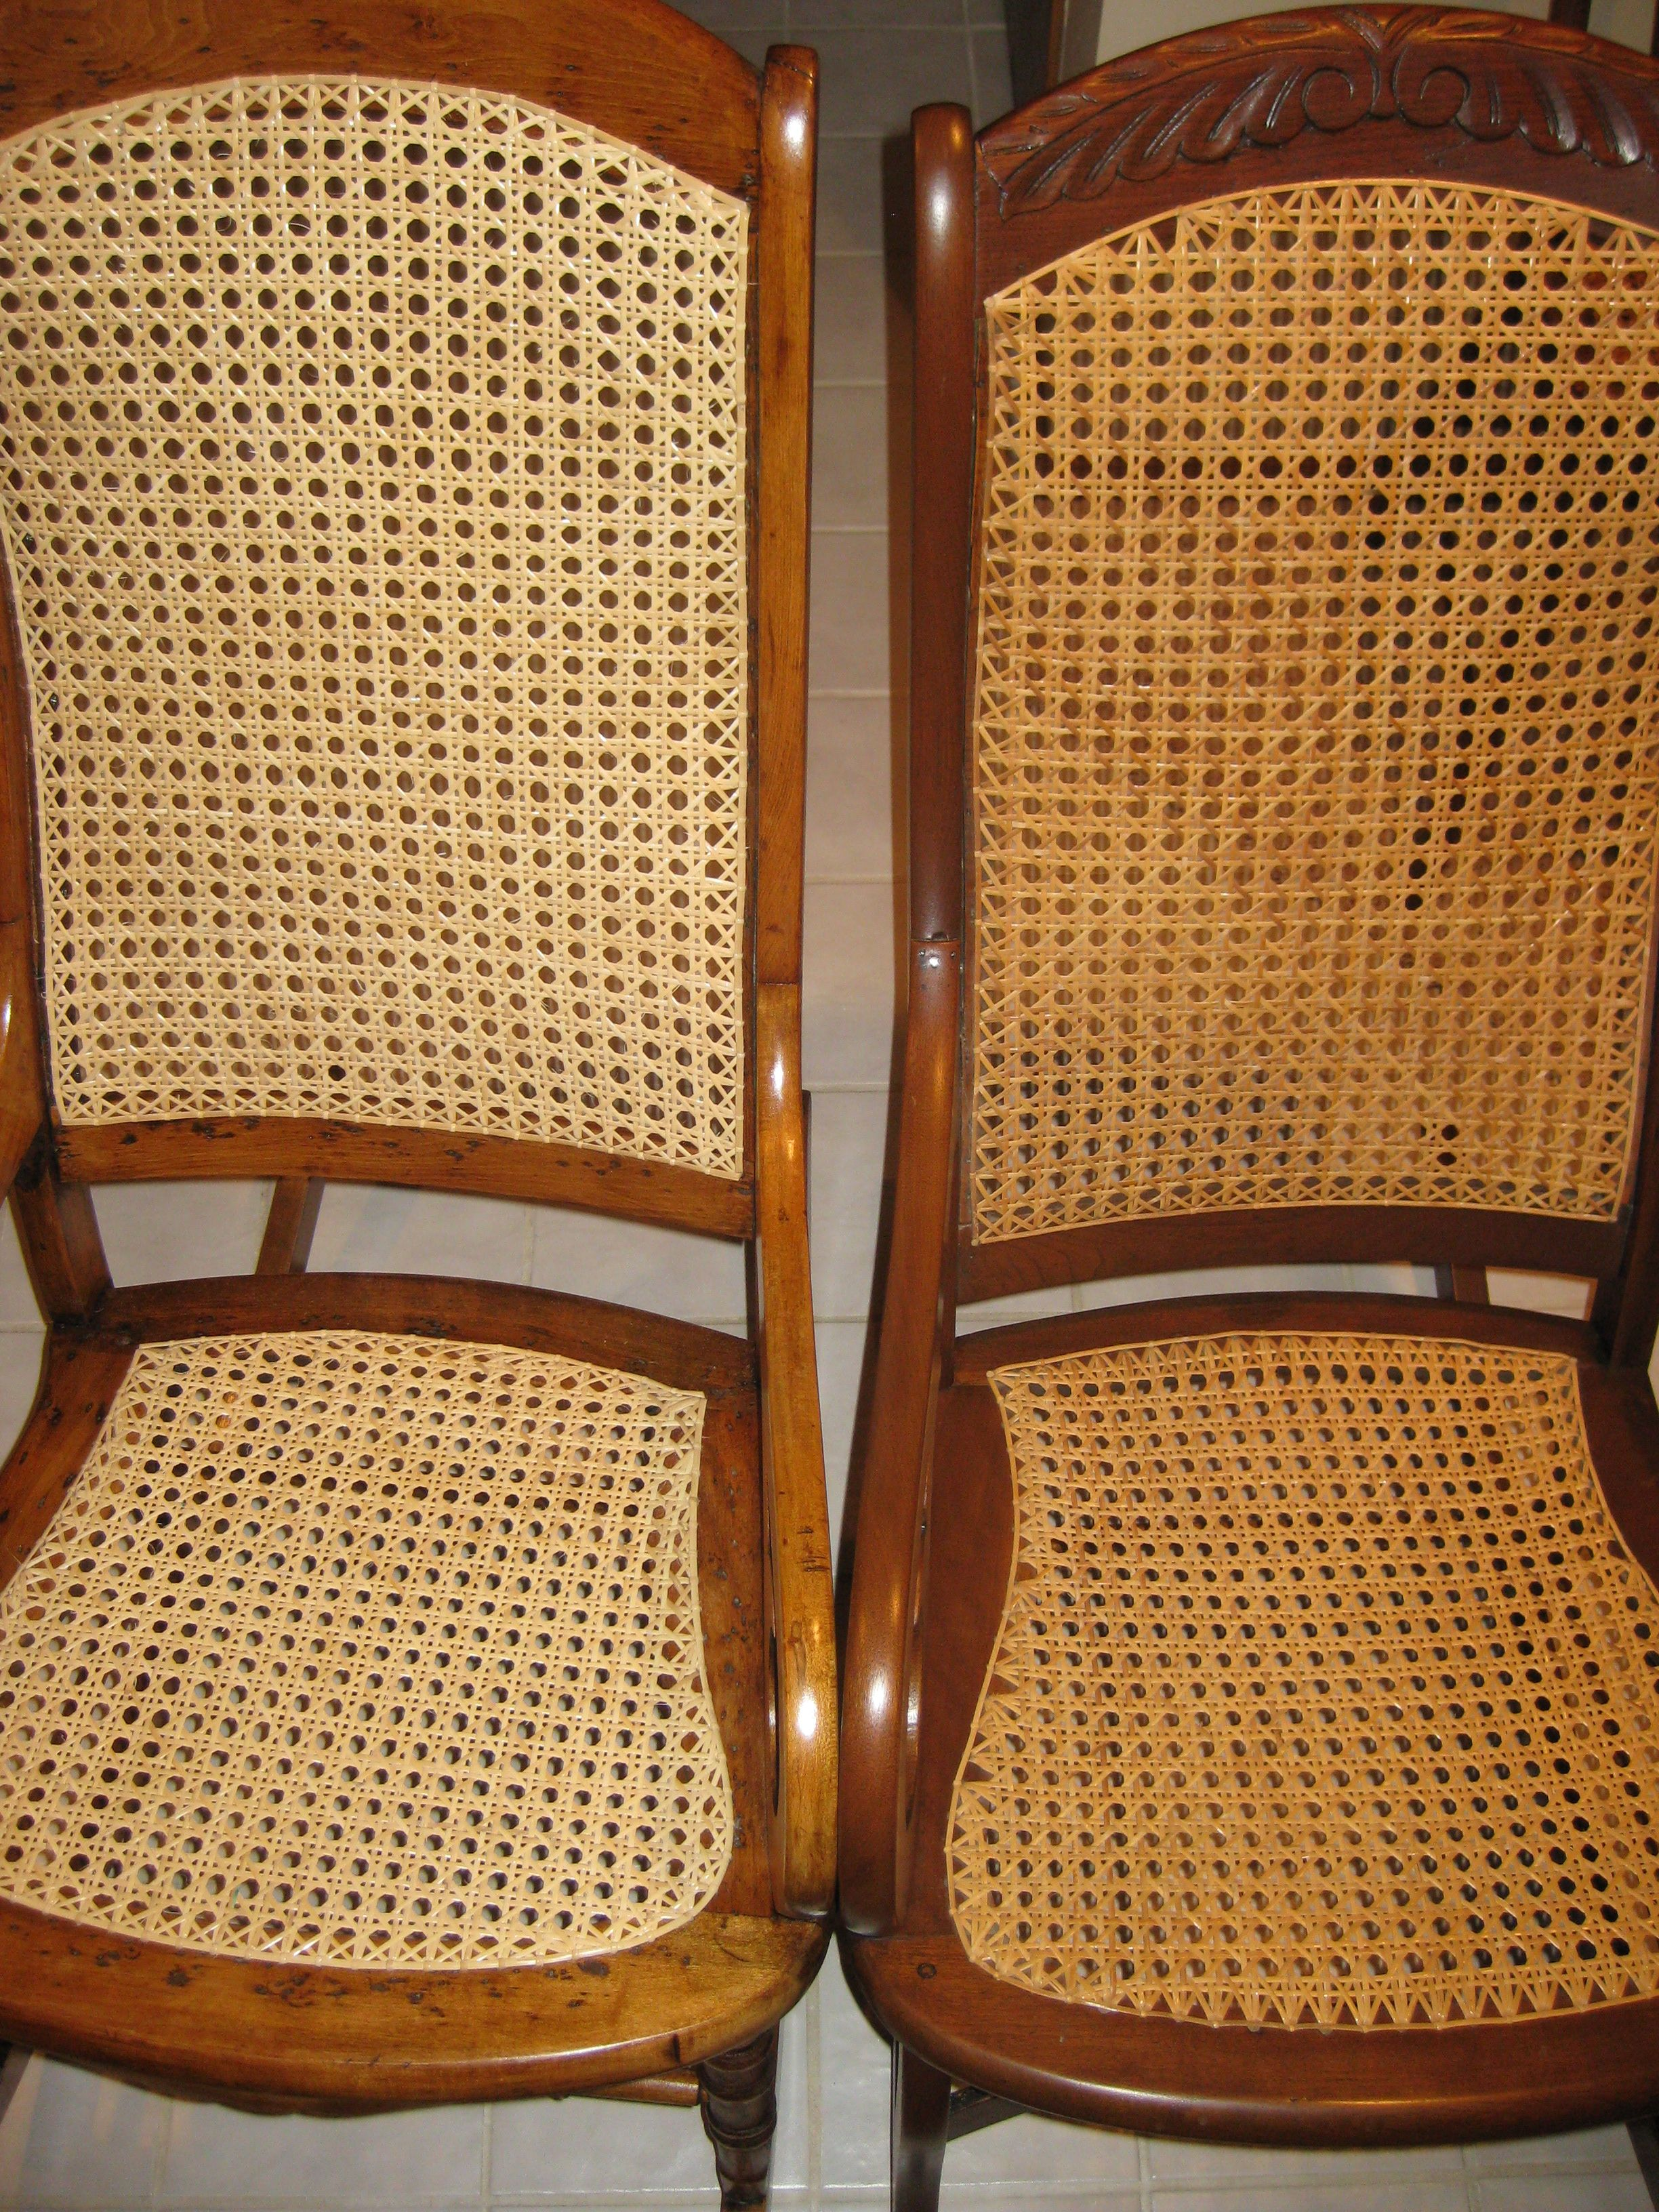 chair caning i have 2 chairs that need the seat re caned home decorating pinterest wood. Black Bedroom Furniture Sets. Home Design Ideas